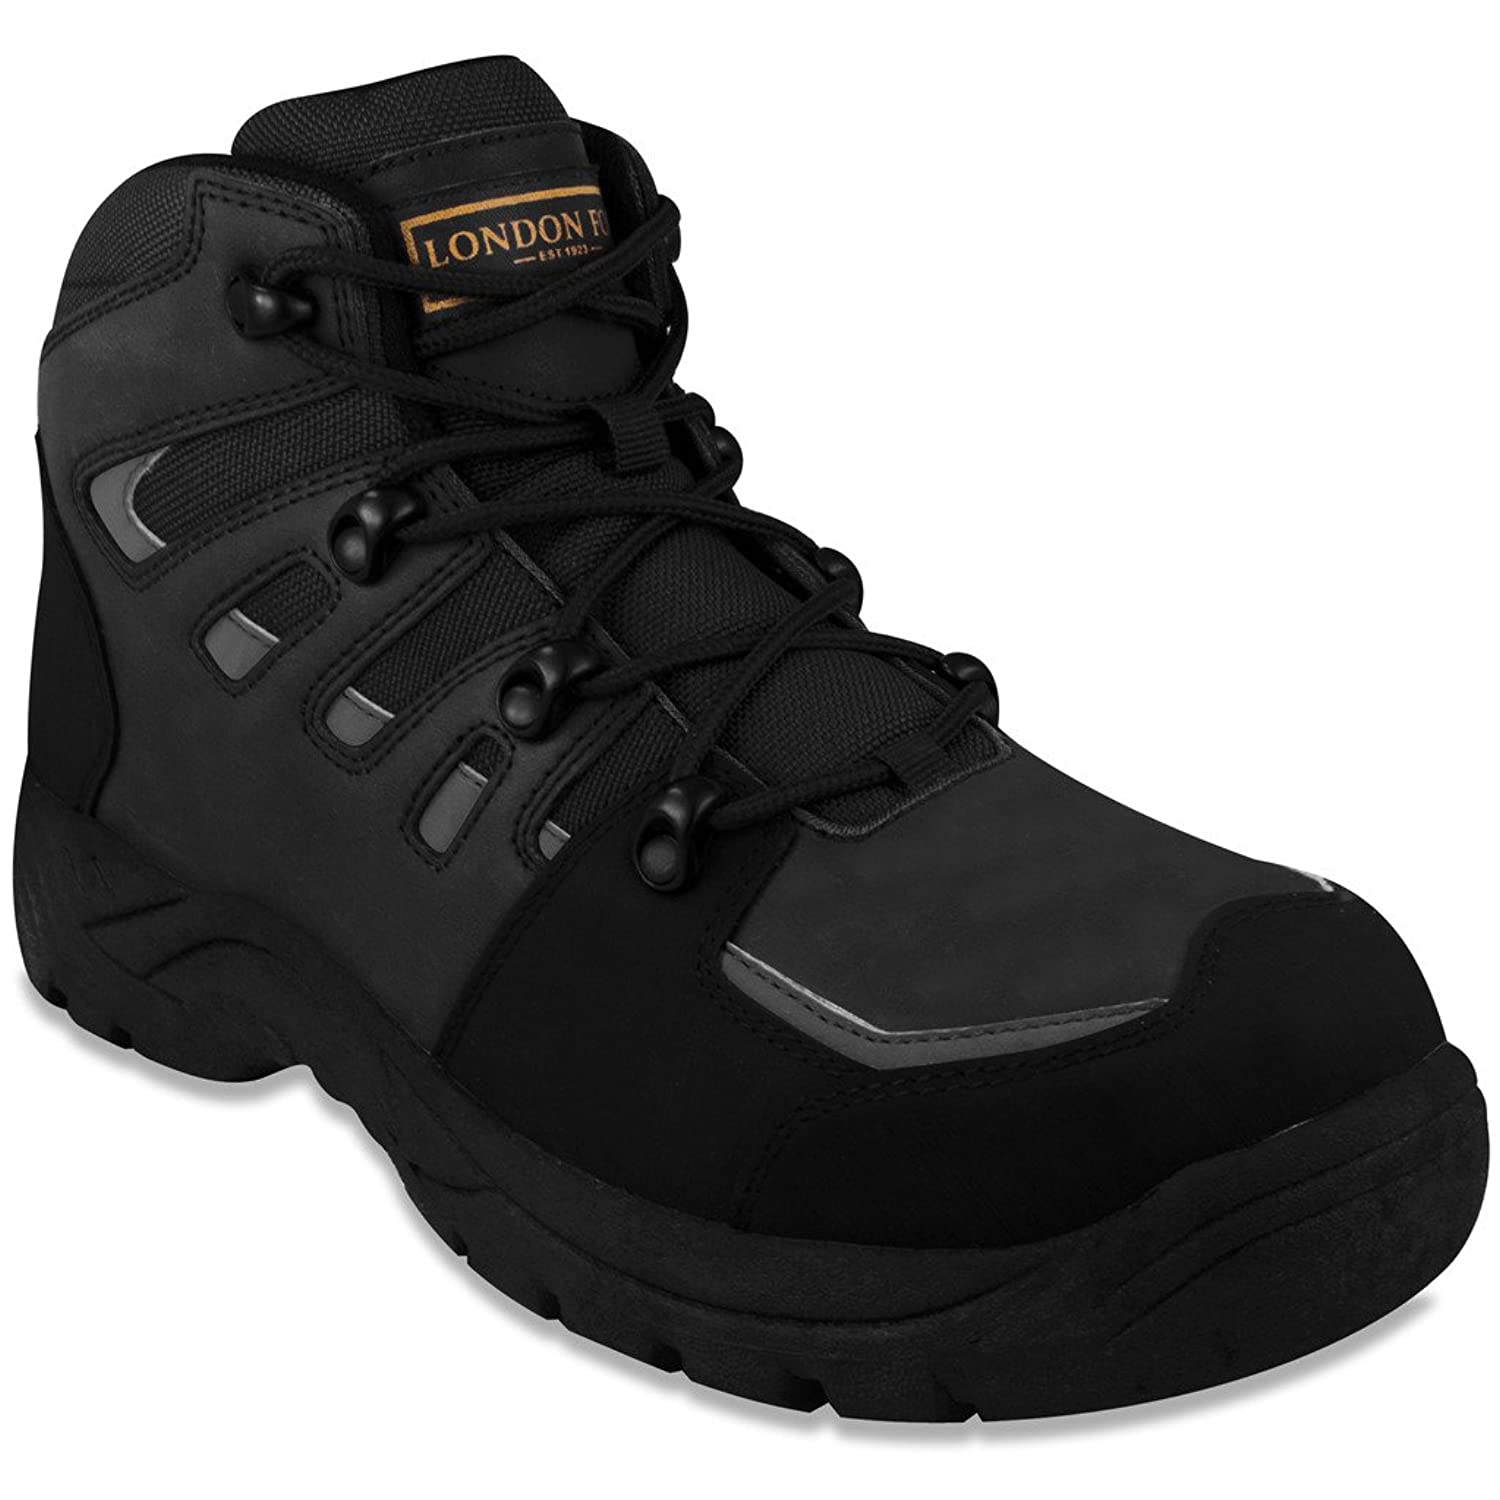 bfecb9b7b Snow Boots G-9021SC Womens Duck Boots Leather Waterproof Thermolite  Insulated Hiking 5-Eye Winter Shoes